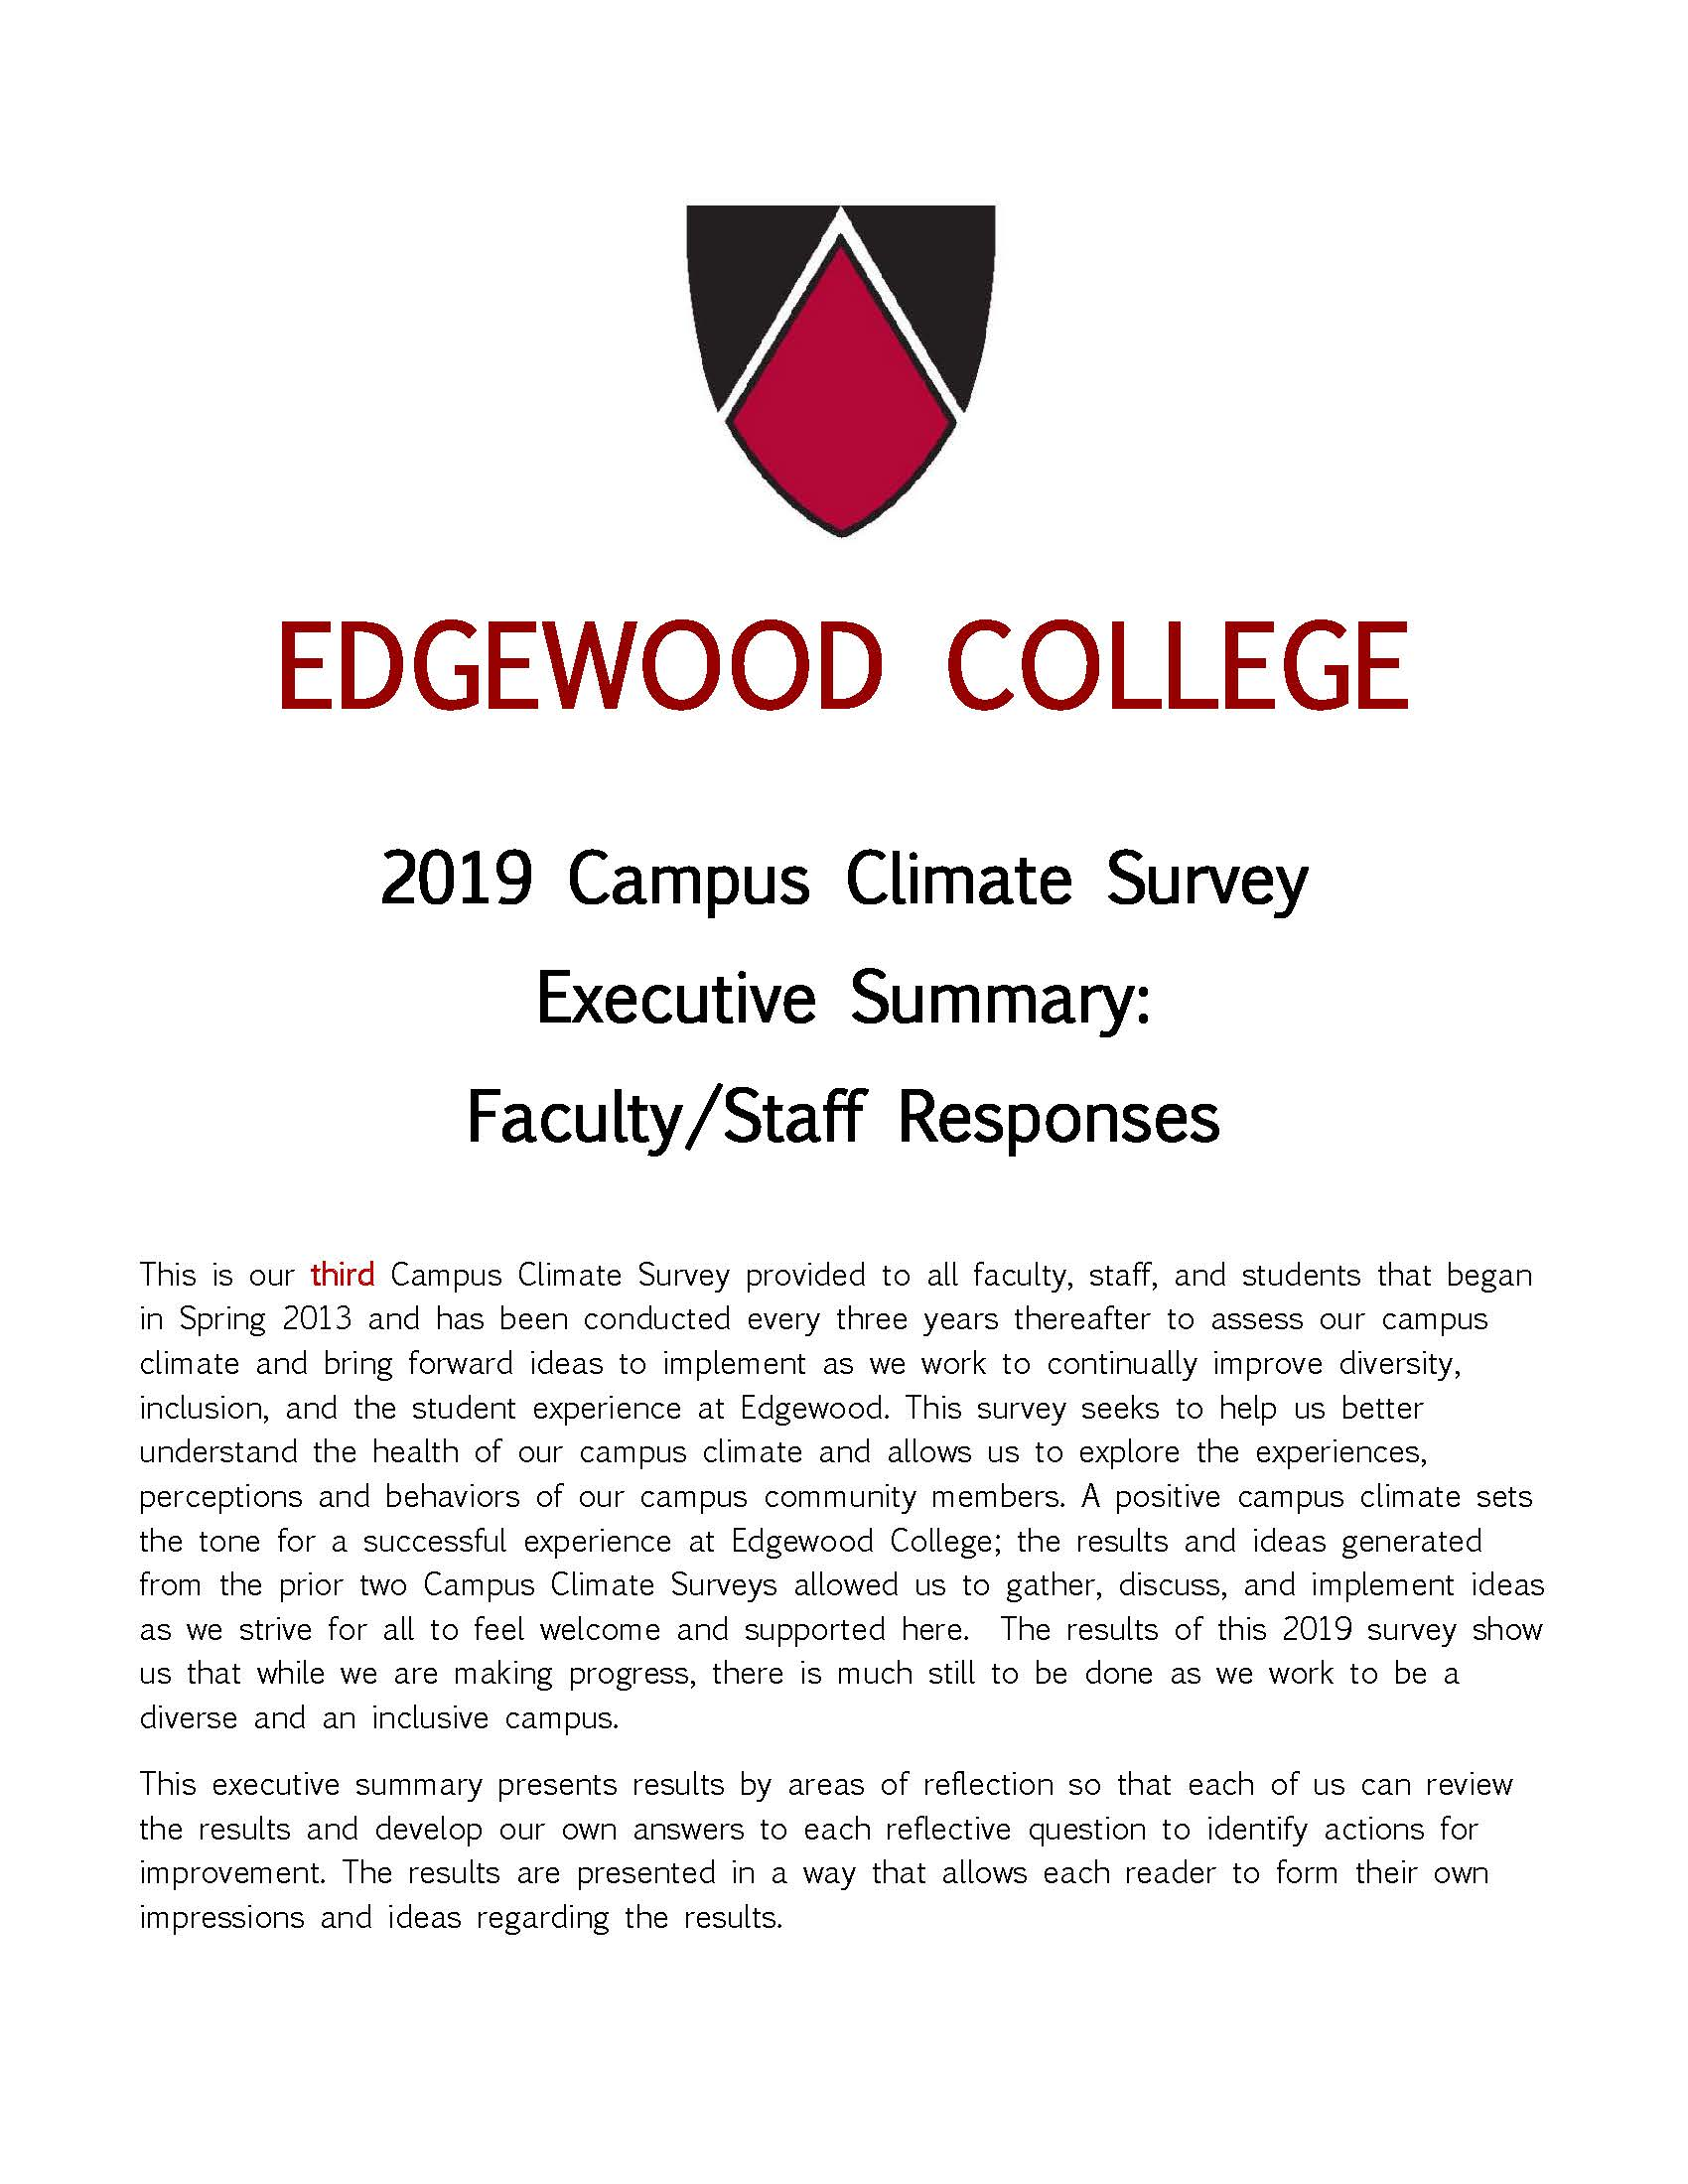 Cover of 2013 Exe Summary Faculty Staff Responses